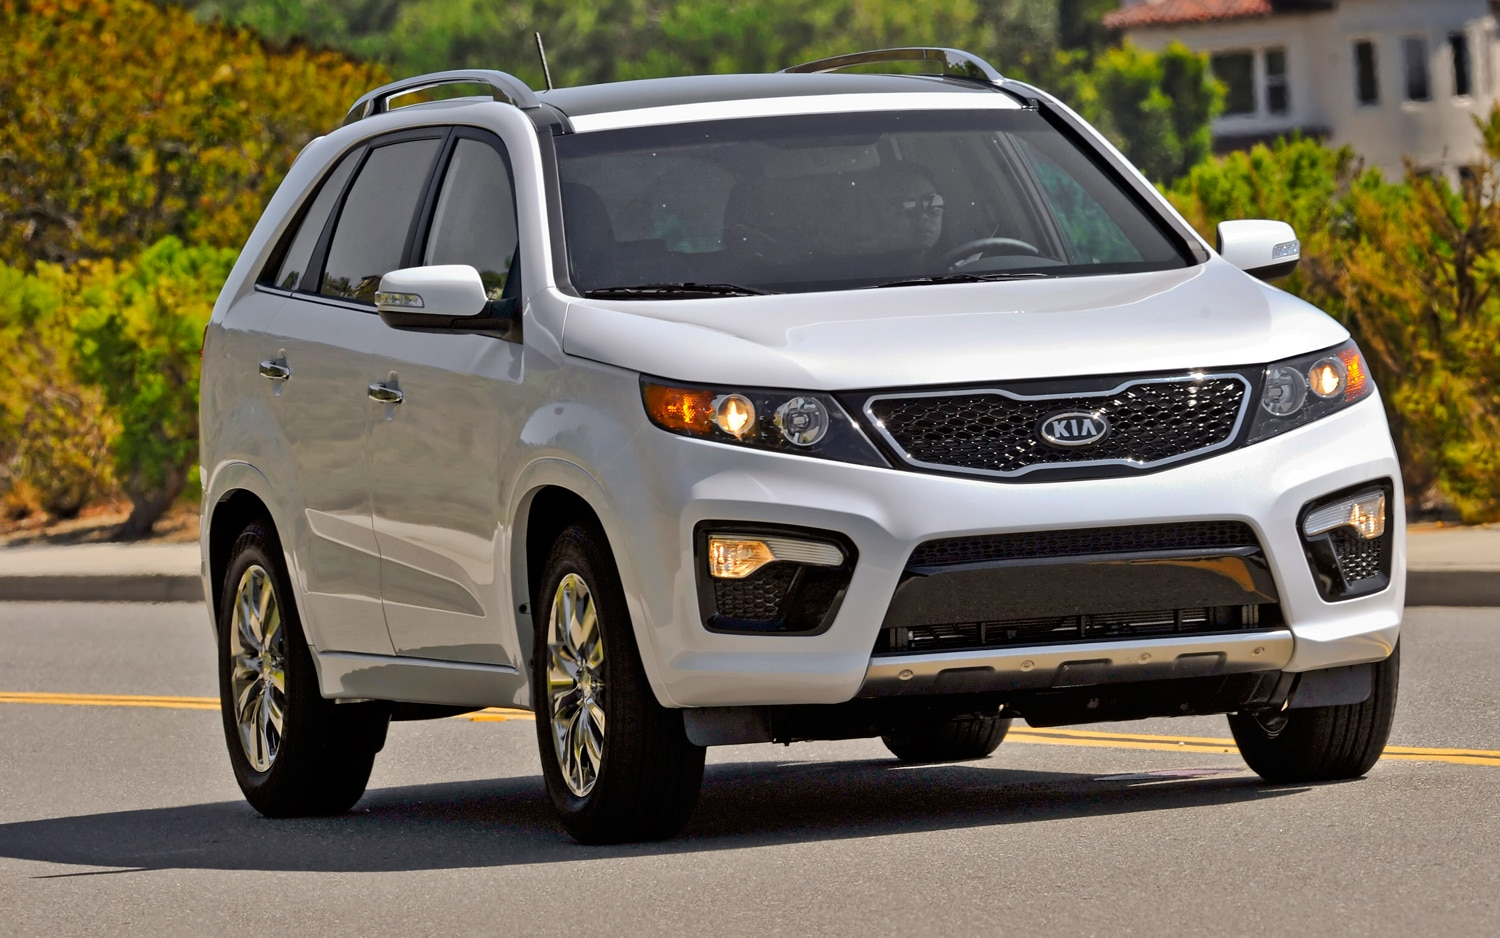 2012 Kia Sorento Front Right View 4